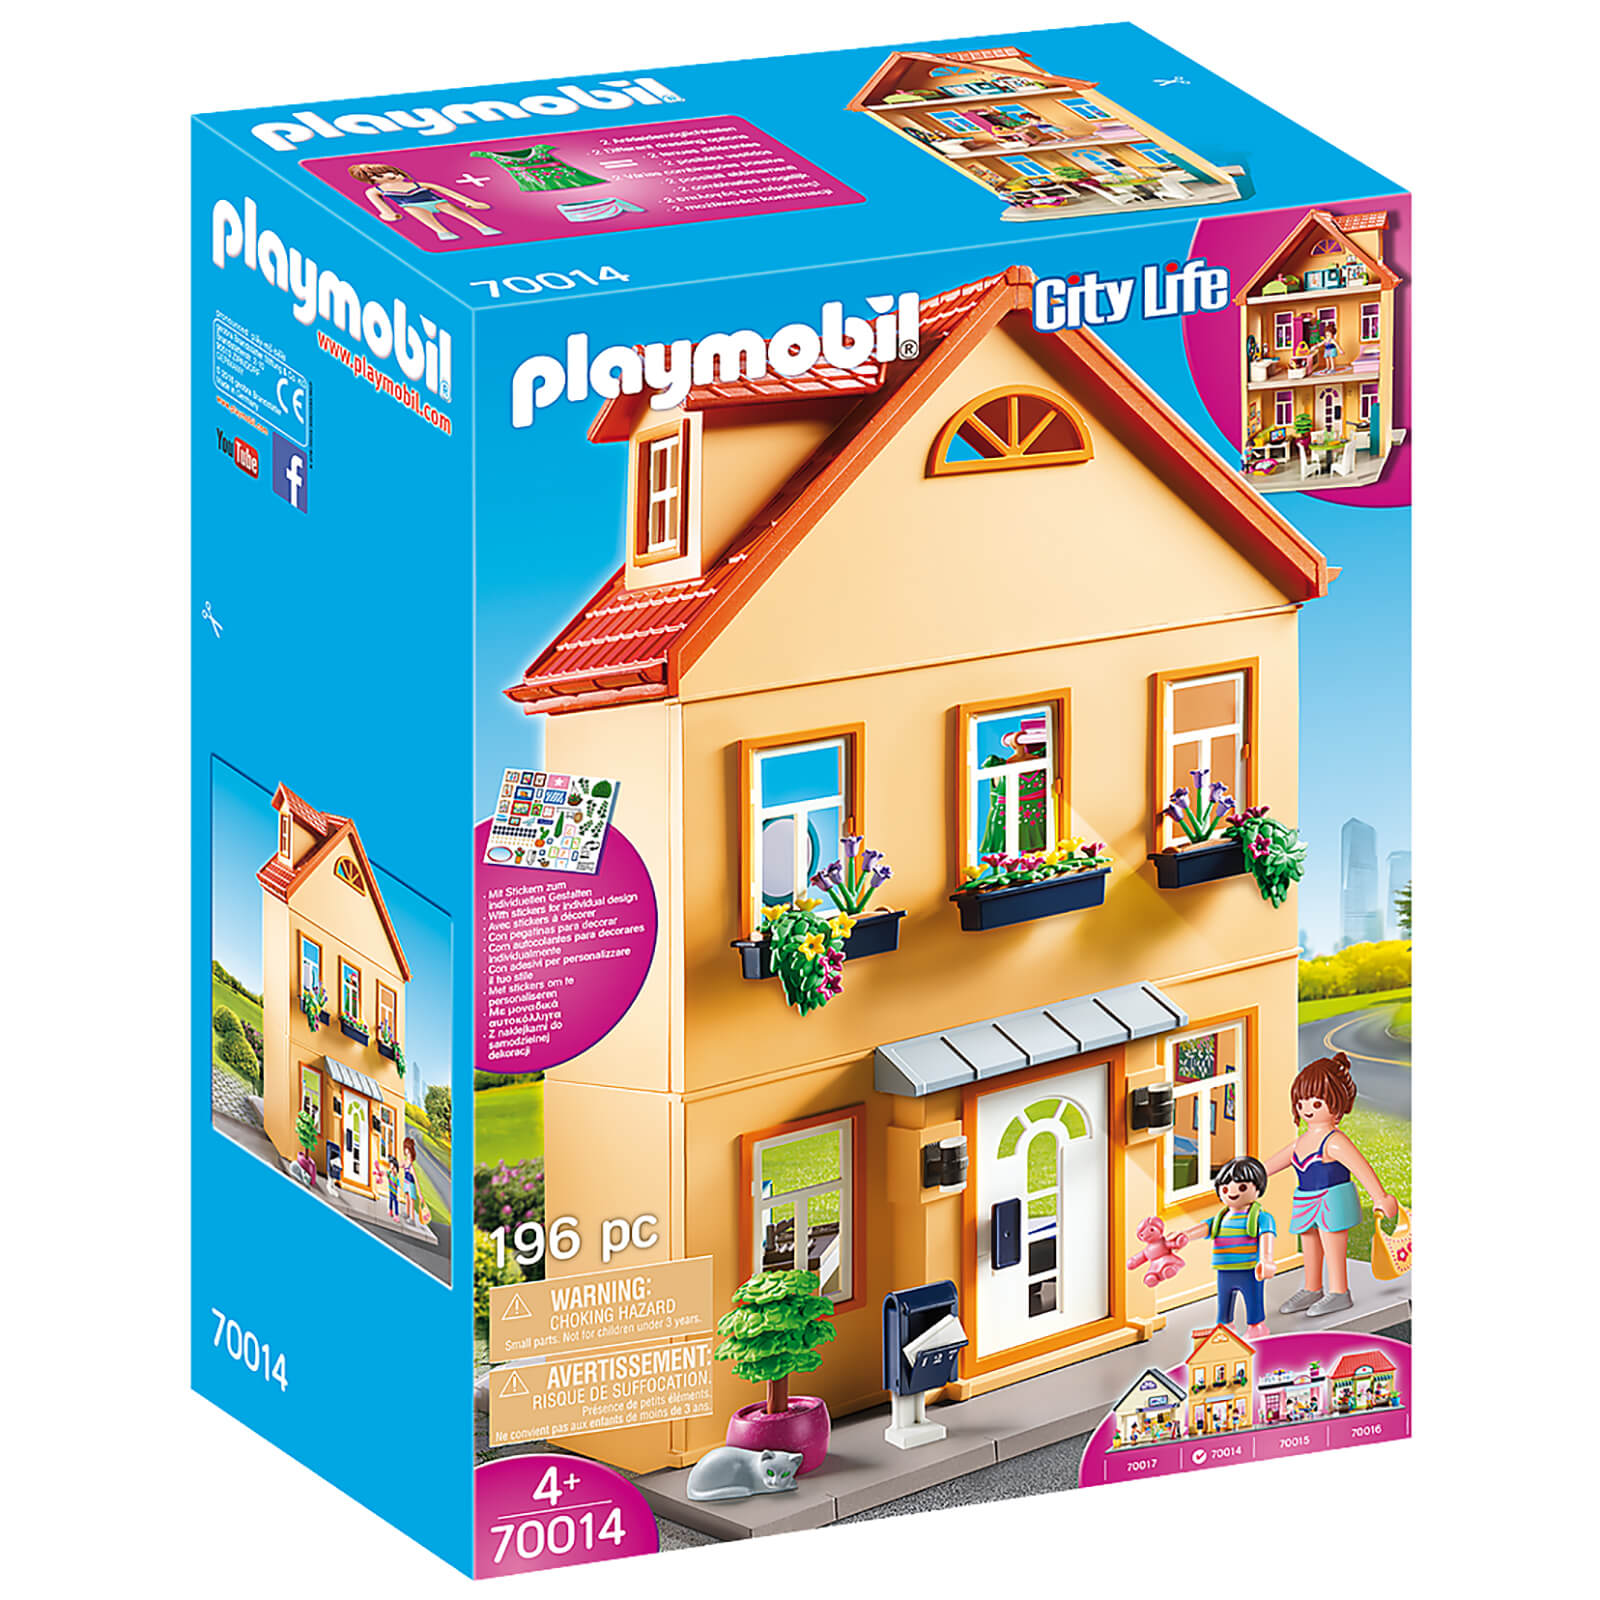 Image of Playmobil City Life My Town House